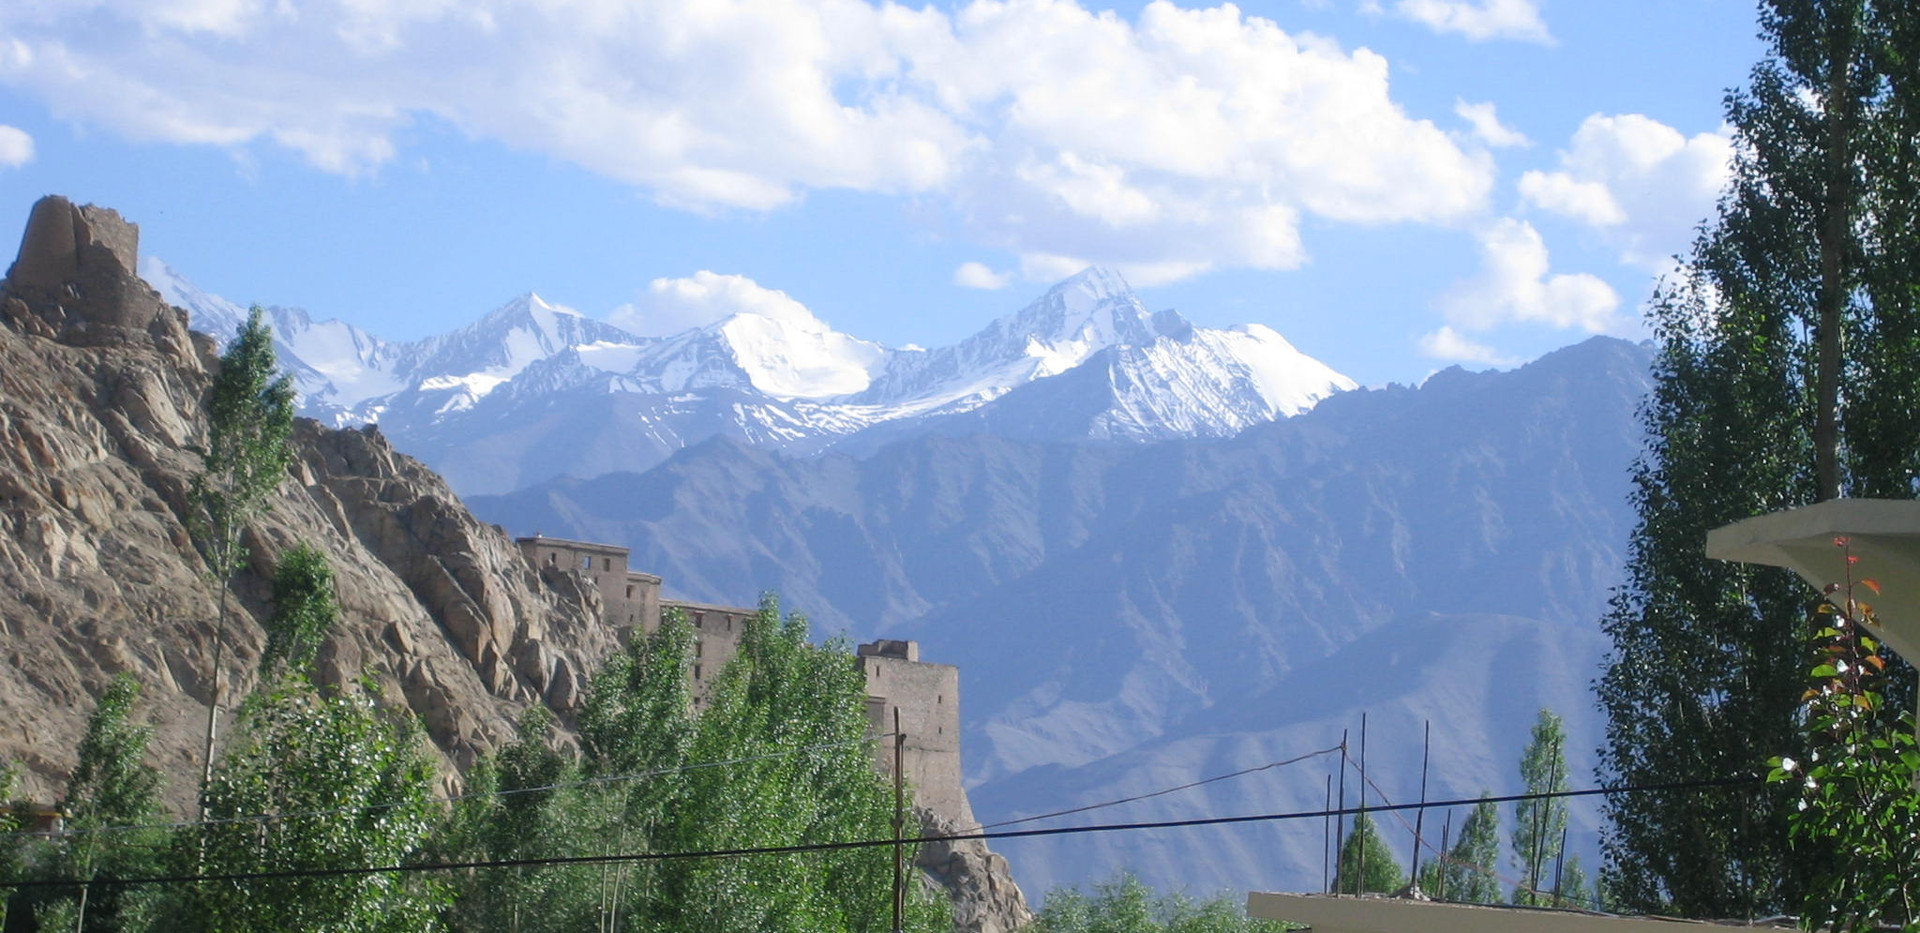 Stok Kangri in from Leh.